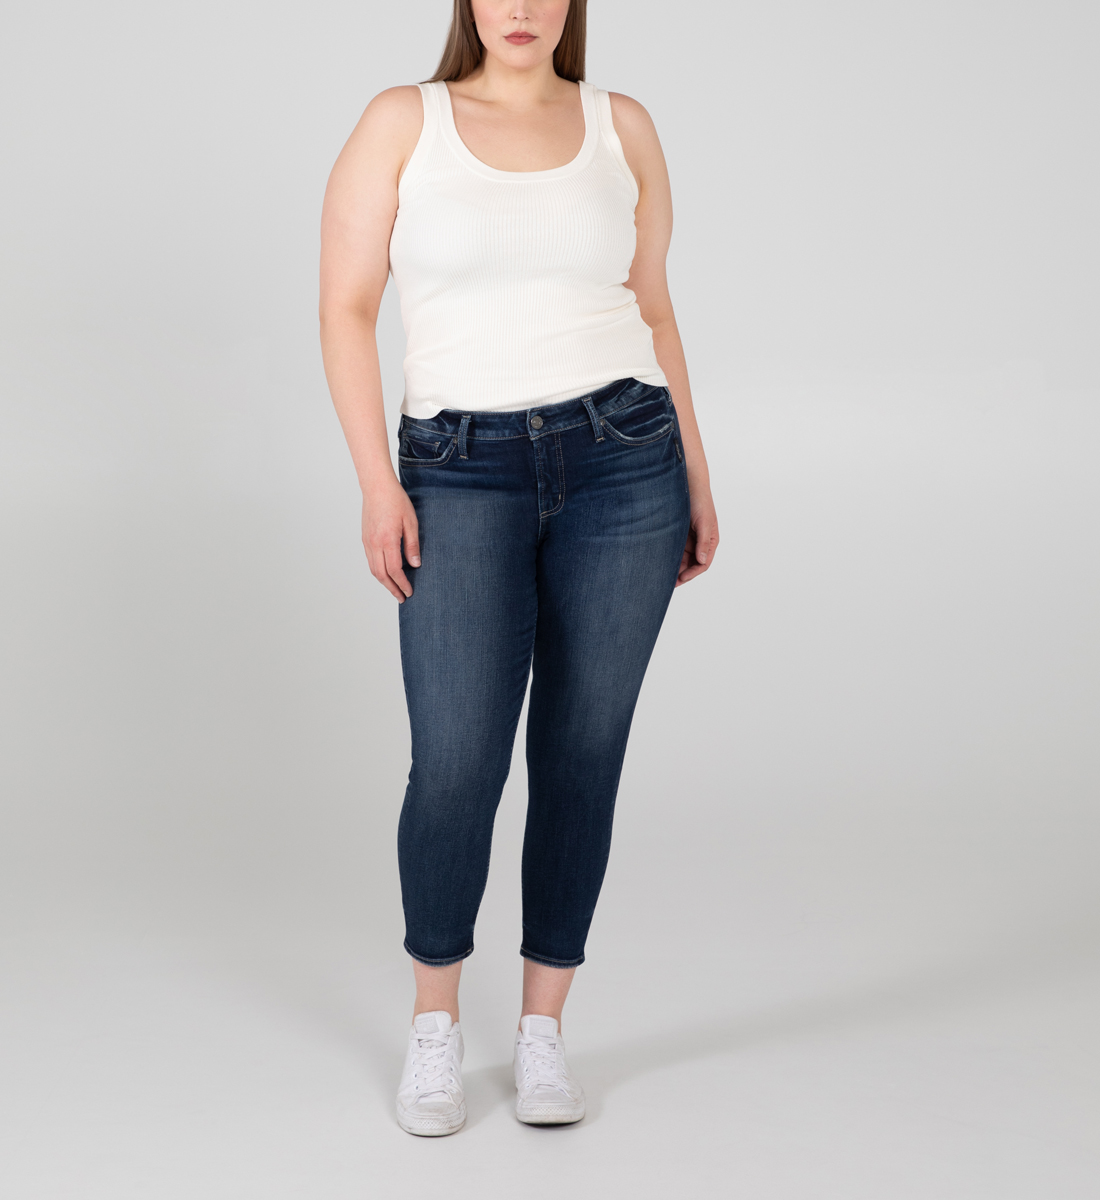 Silver Jeans Elyse Mid Rise Skinny Crop Jeans Plus Size